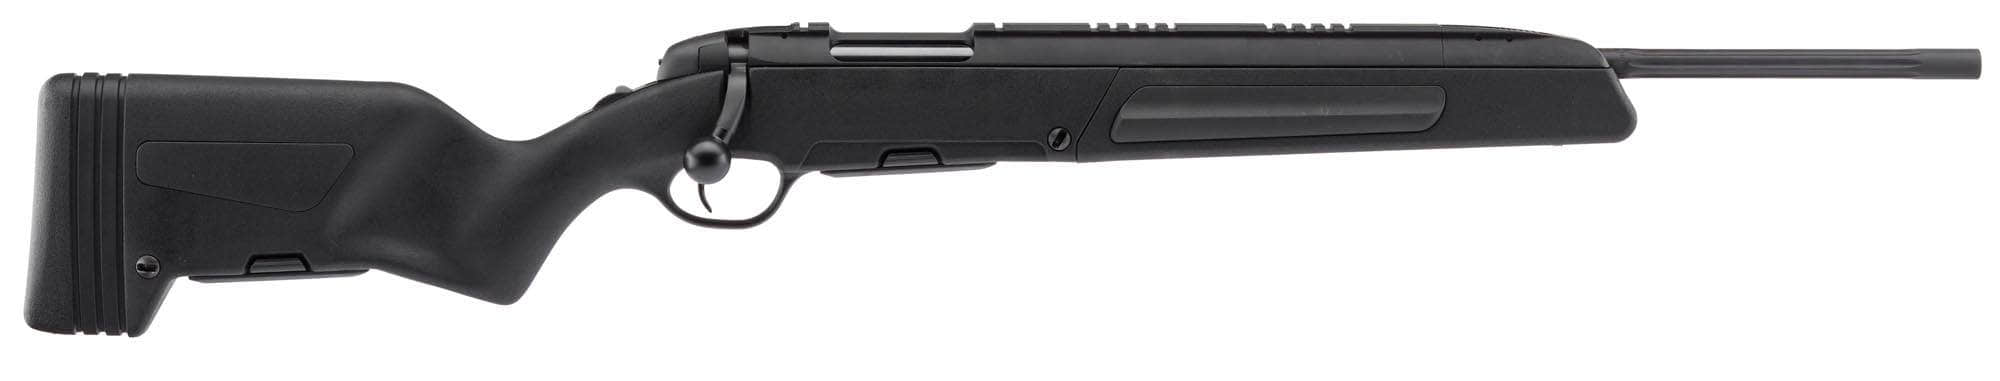 STEYR Scout Synt 7.08 R can 480 mm - SMS13438